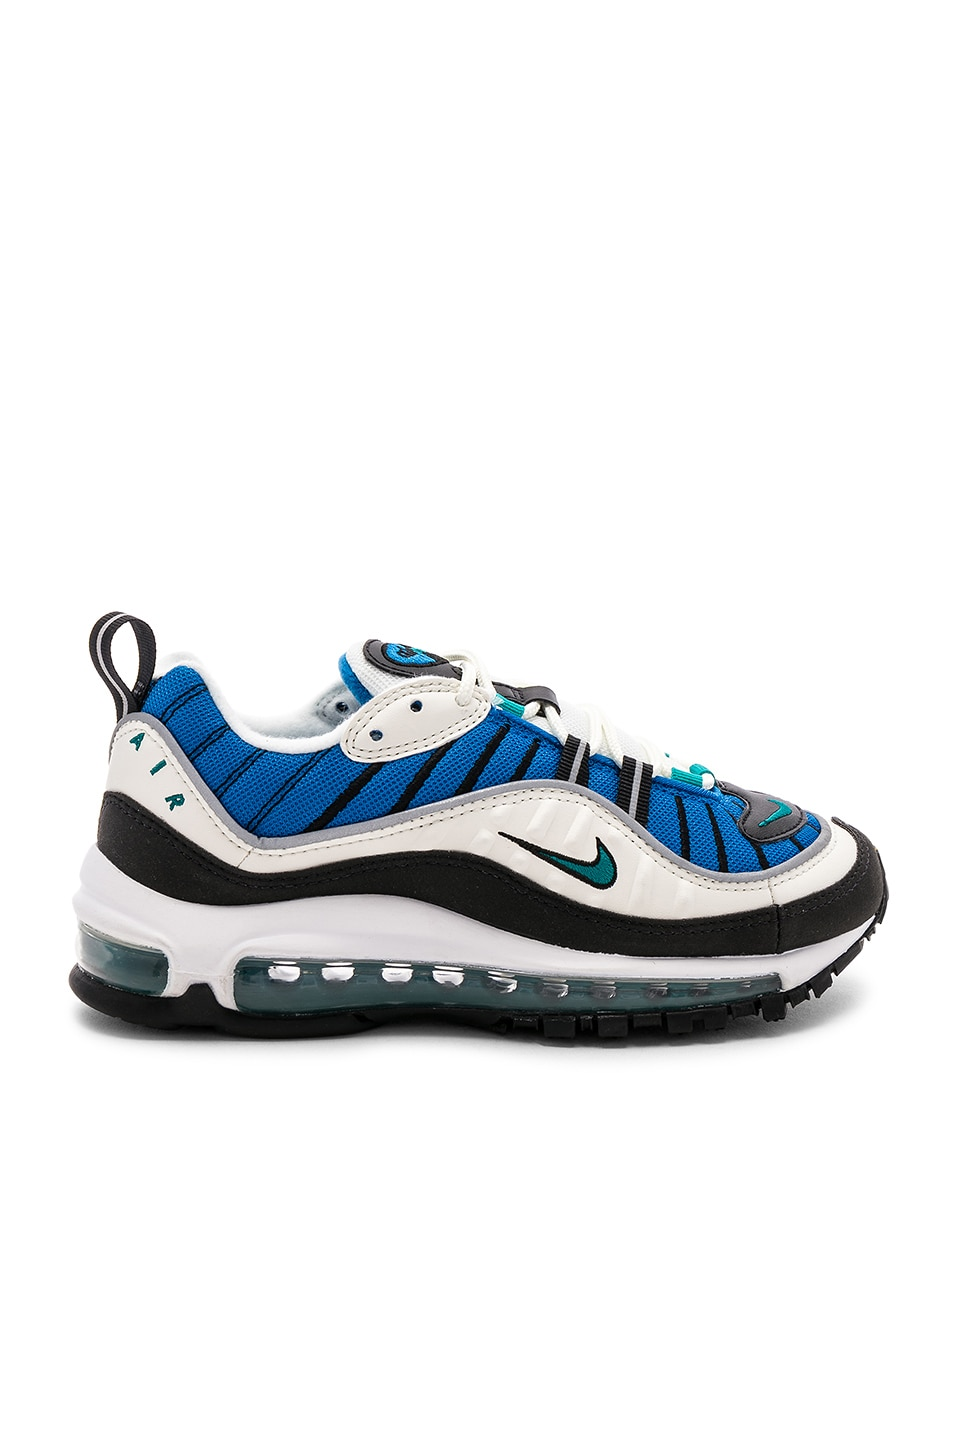 Women's Air Max 98 Sneaker